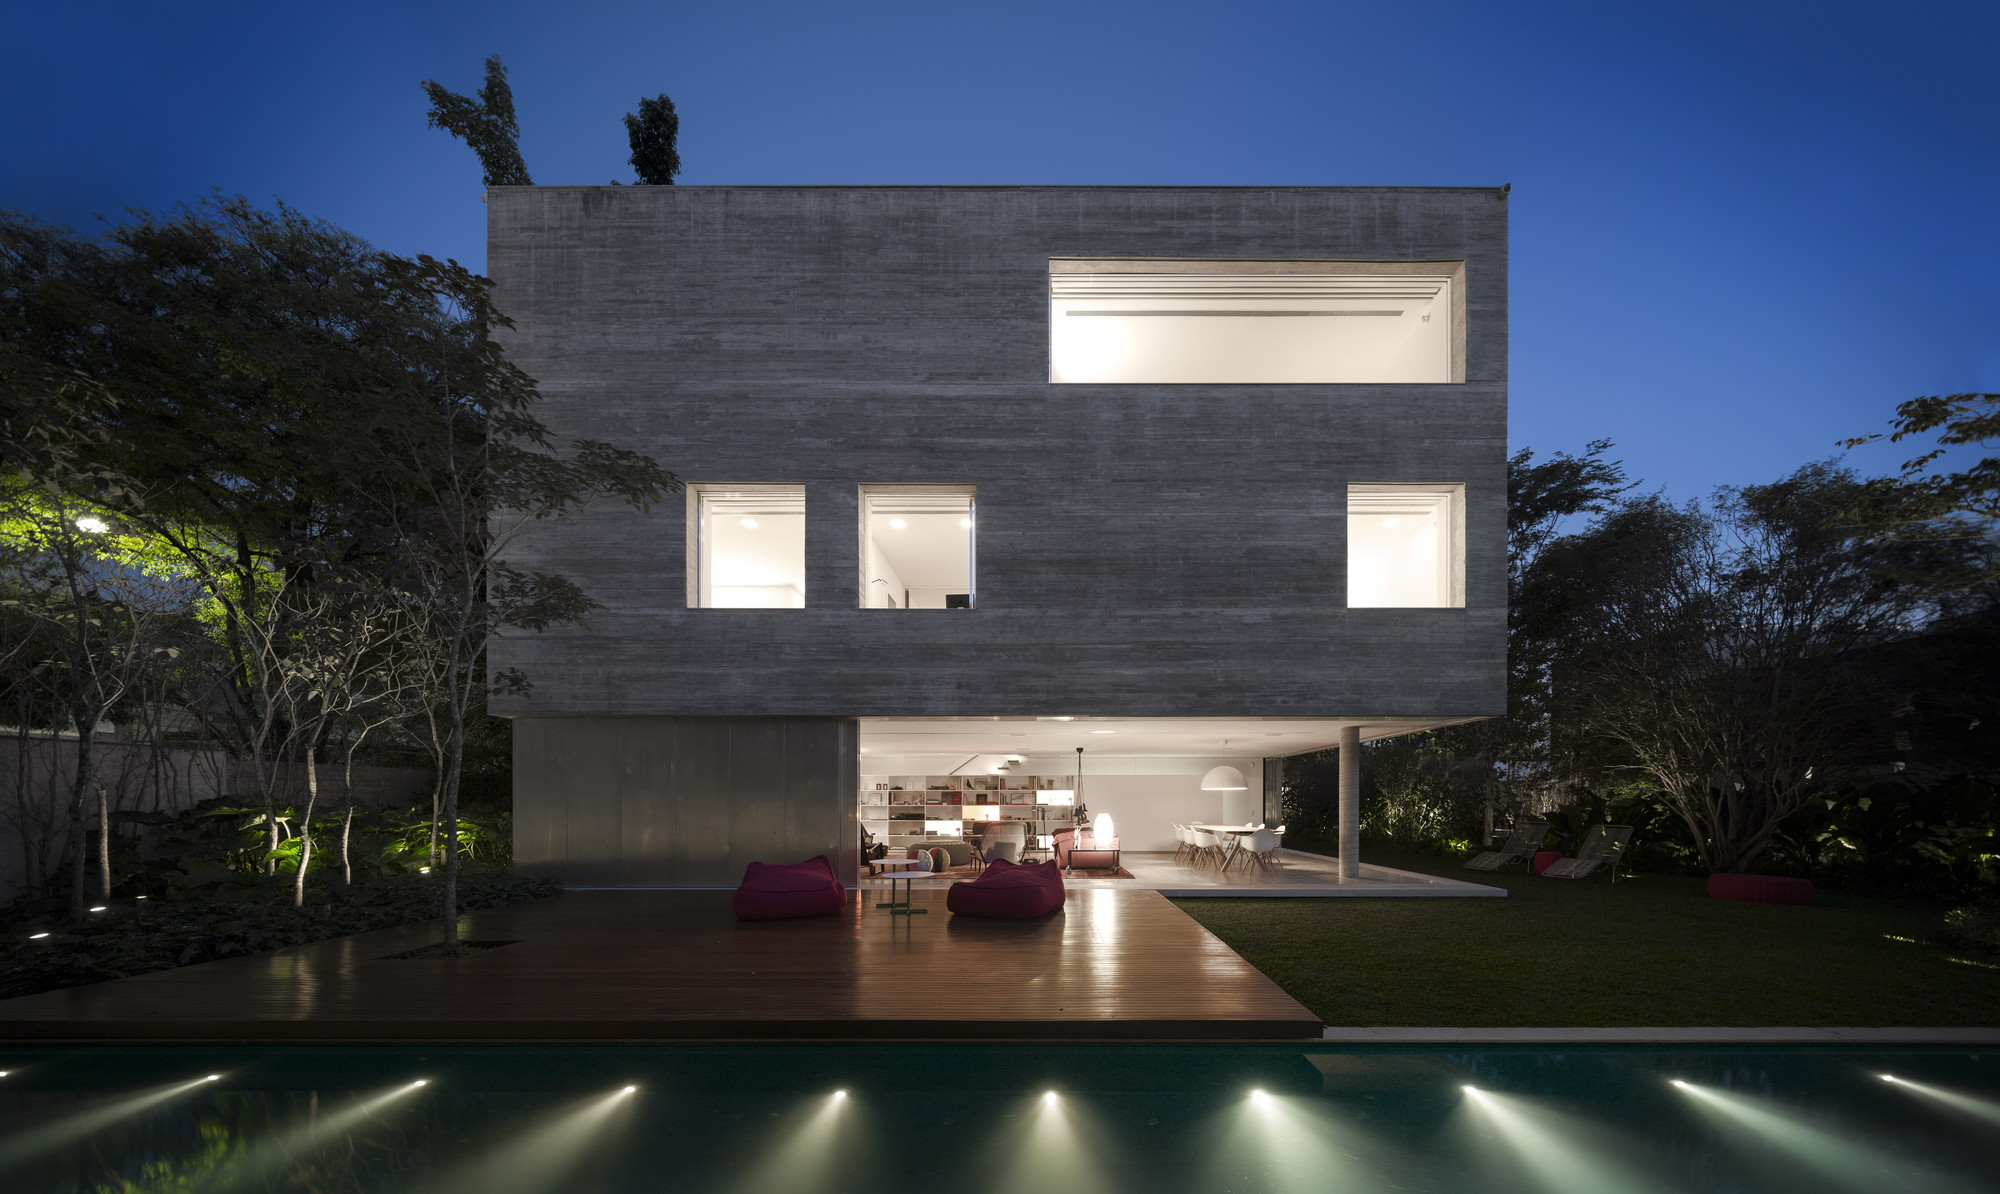 Casa Bad Aibling archdaily broadcasting architecture worldwide page 1532